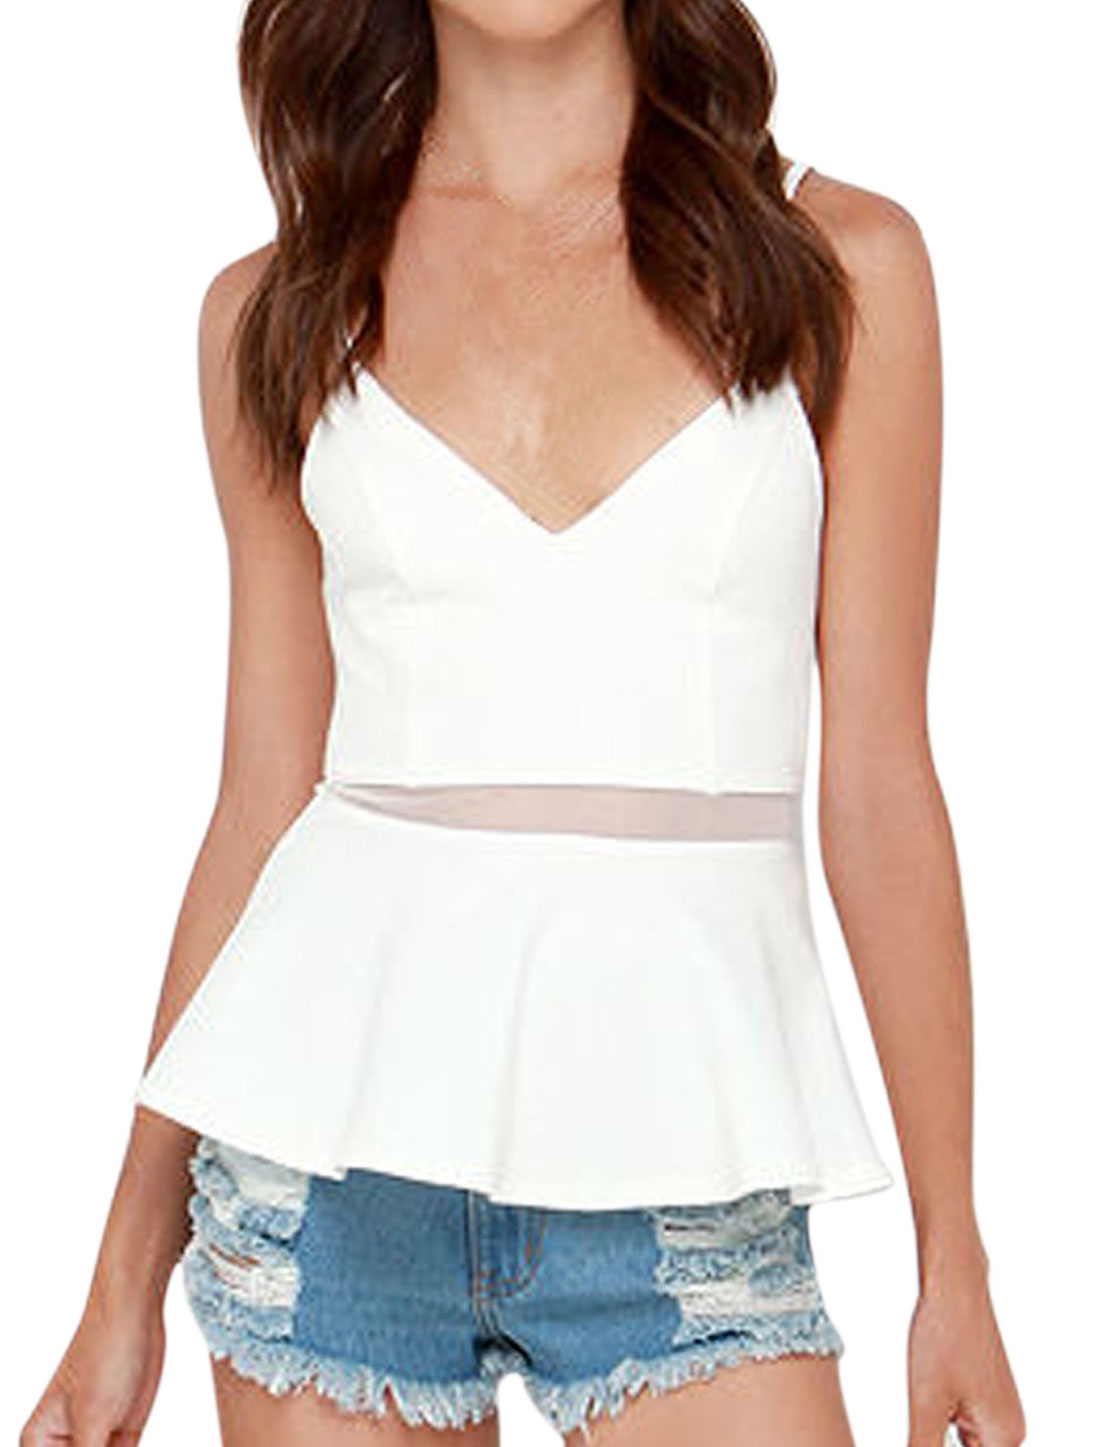 Women Deep V Neck Spaghetti Strap Mesh Panel Detail Peplum Top White S